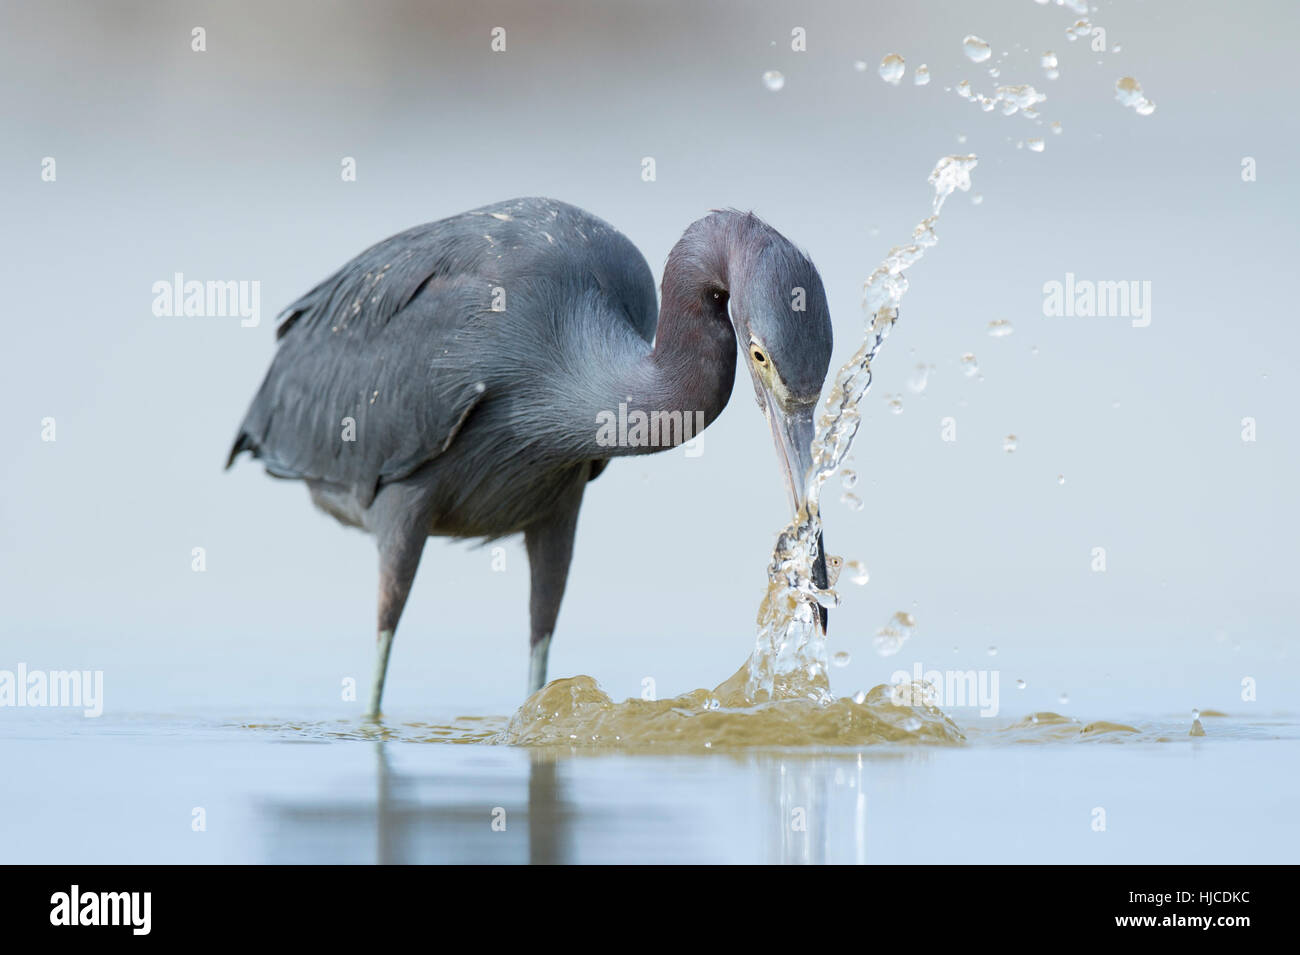 A Little Blue Heron grabs a fish out of the shallow water and creates a large splash of water. - Stock Image